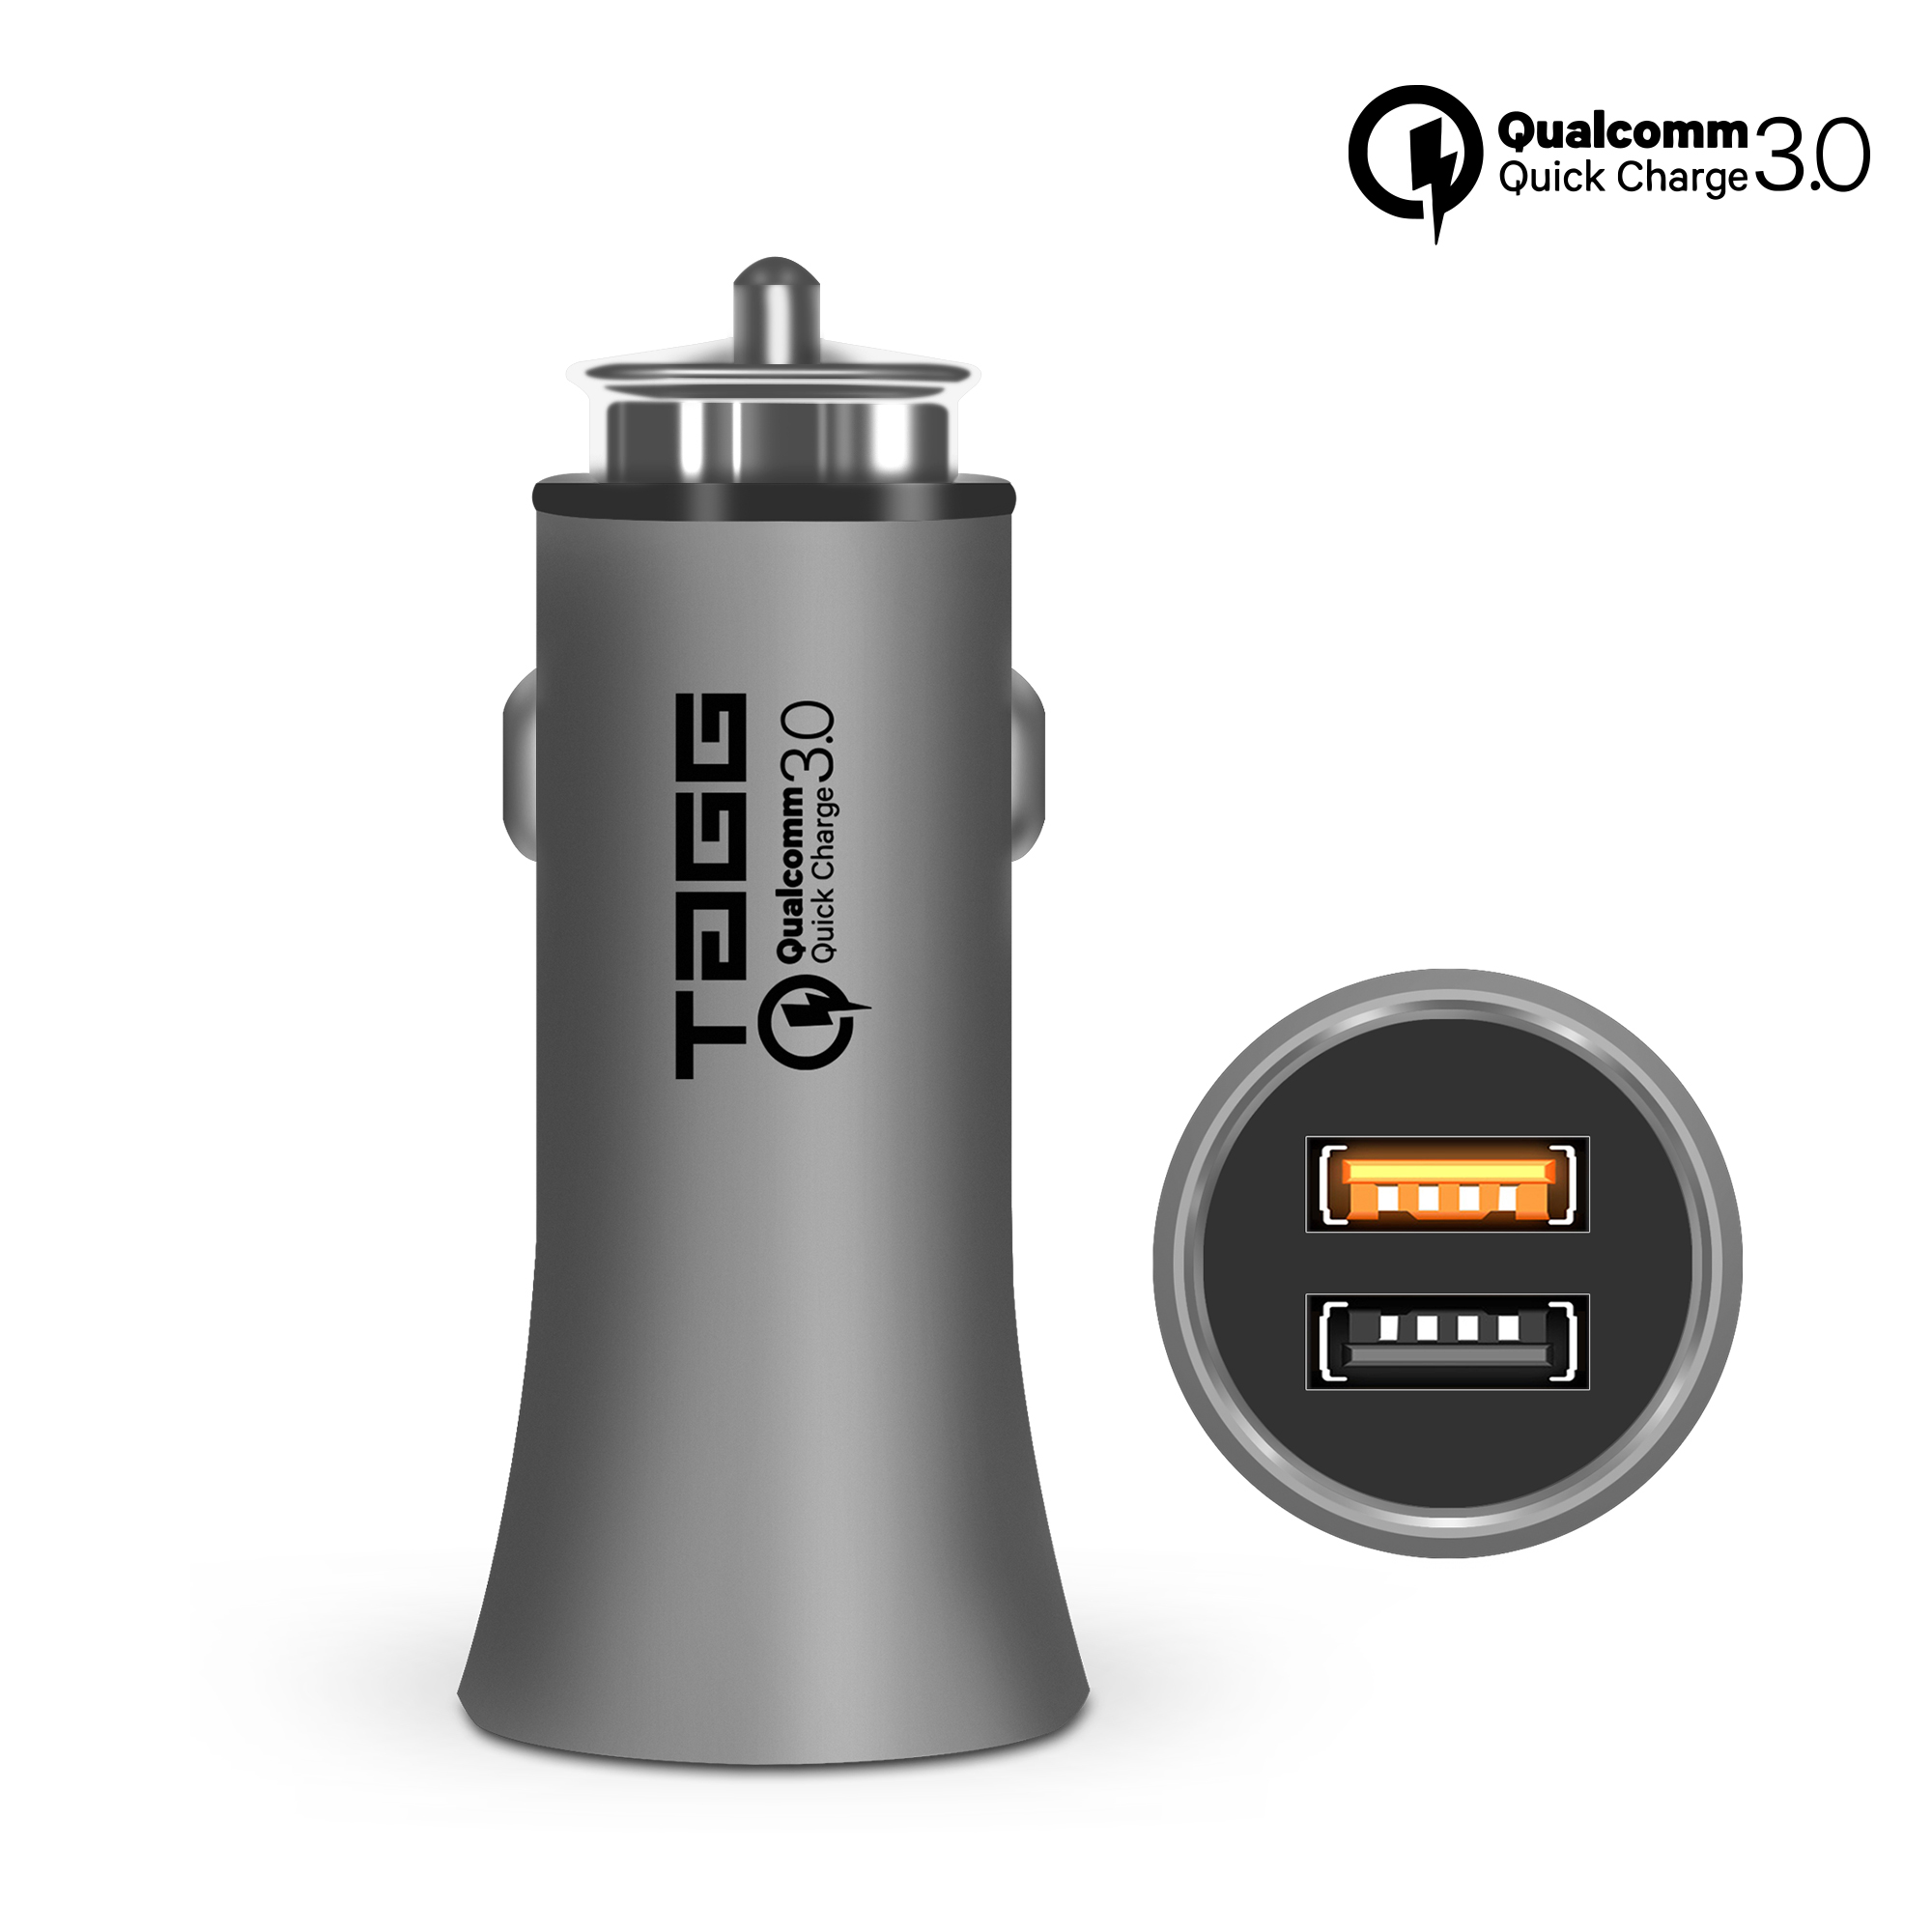 TAGG Roadster Dual USB Car Charger